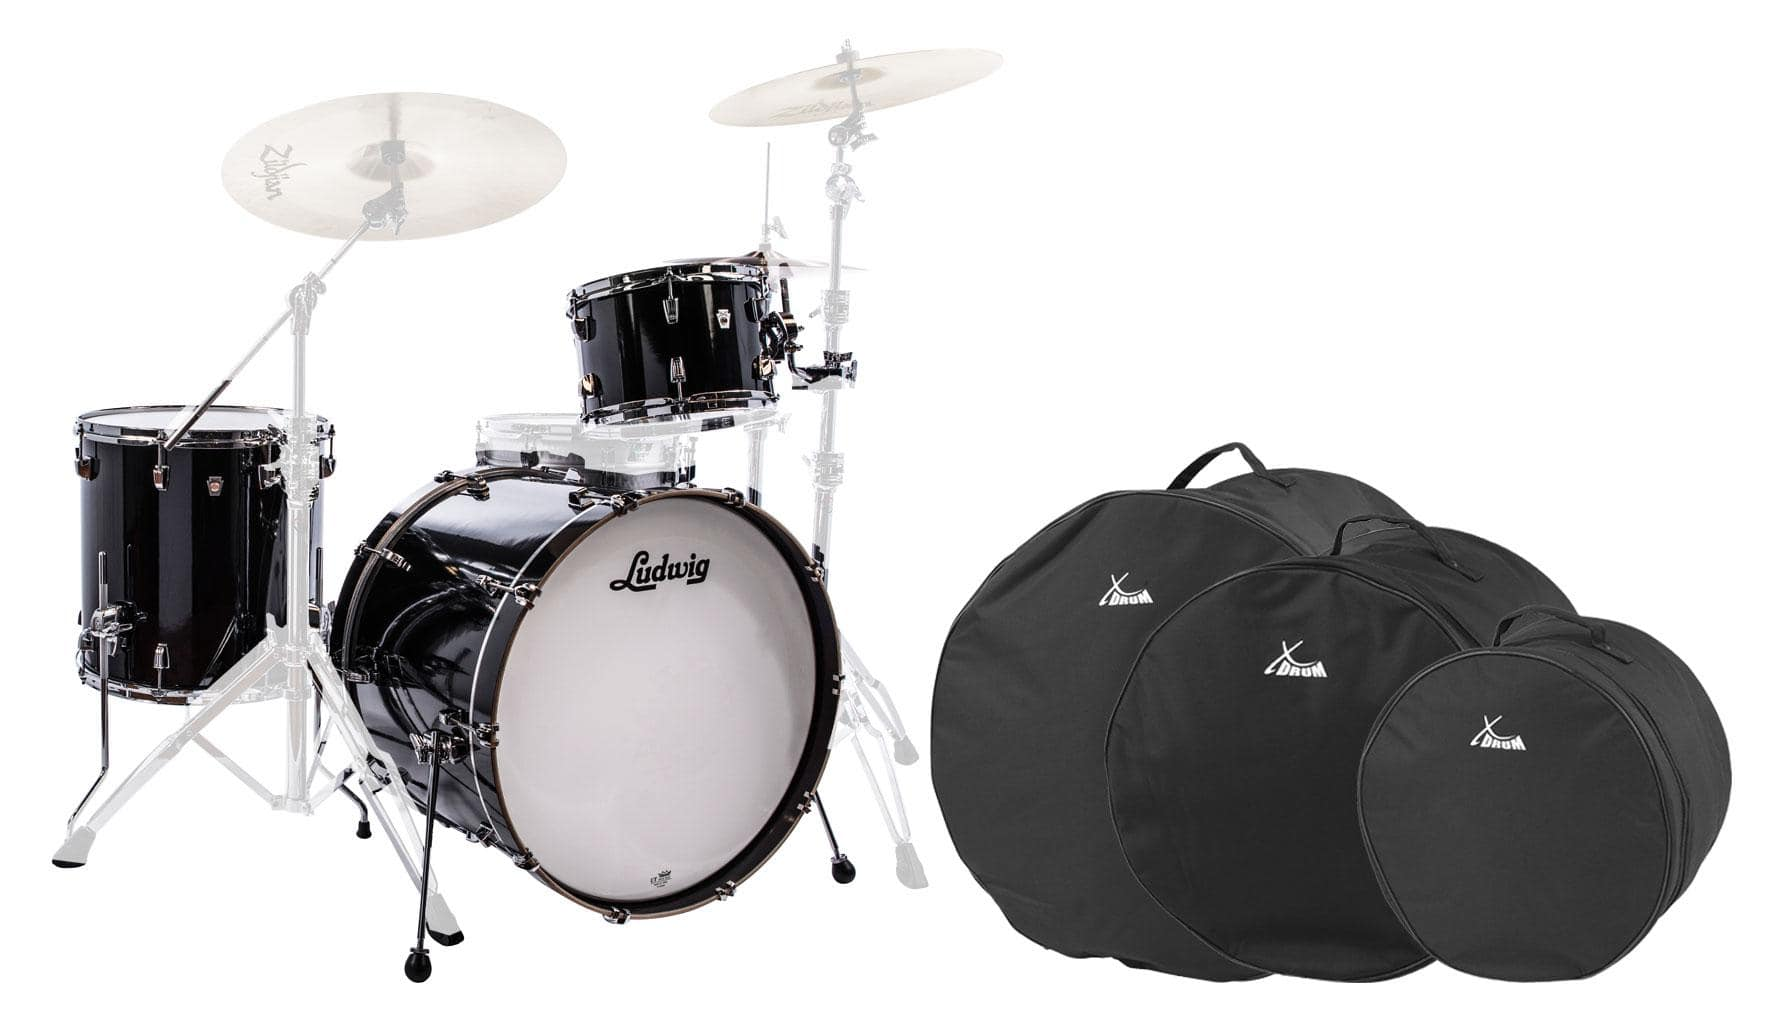 Ludwig L26223TXCG NeuSonic Shellset Black Cortex Set inkl. Drum Bags